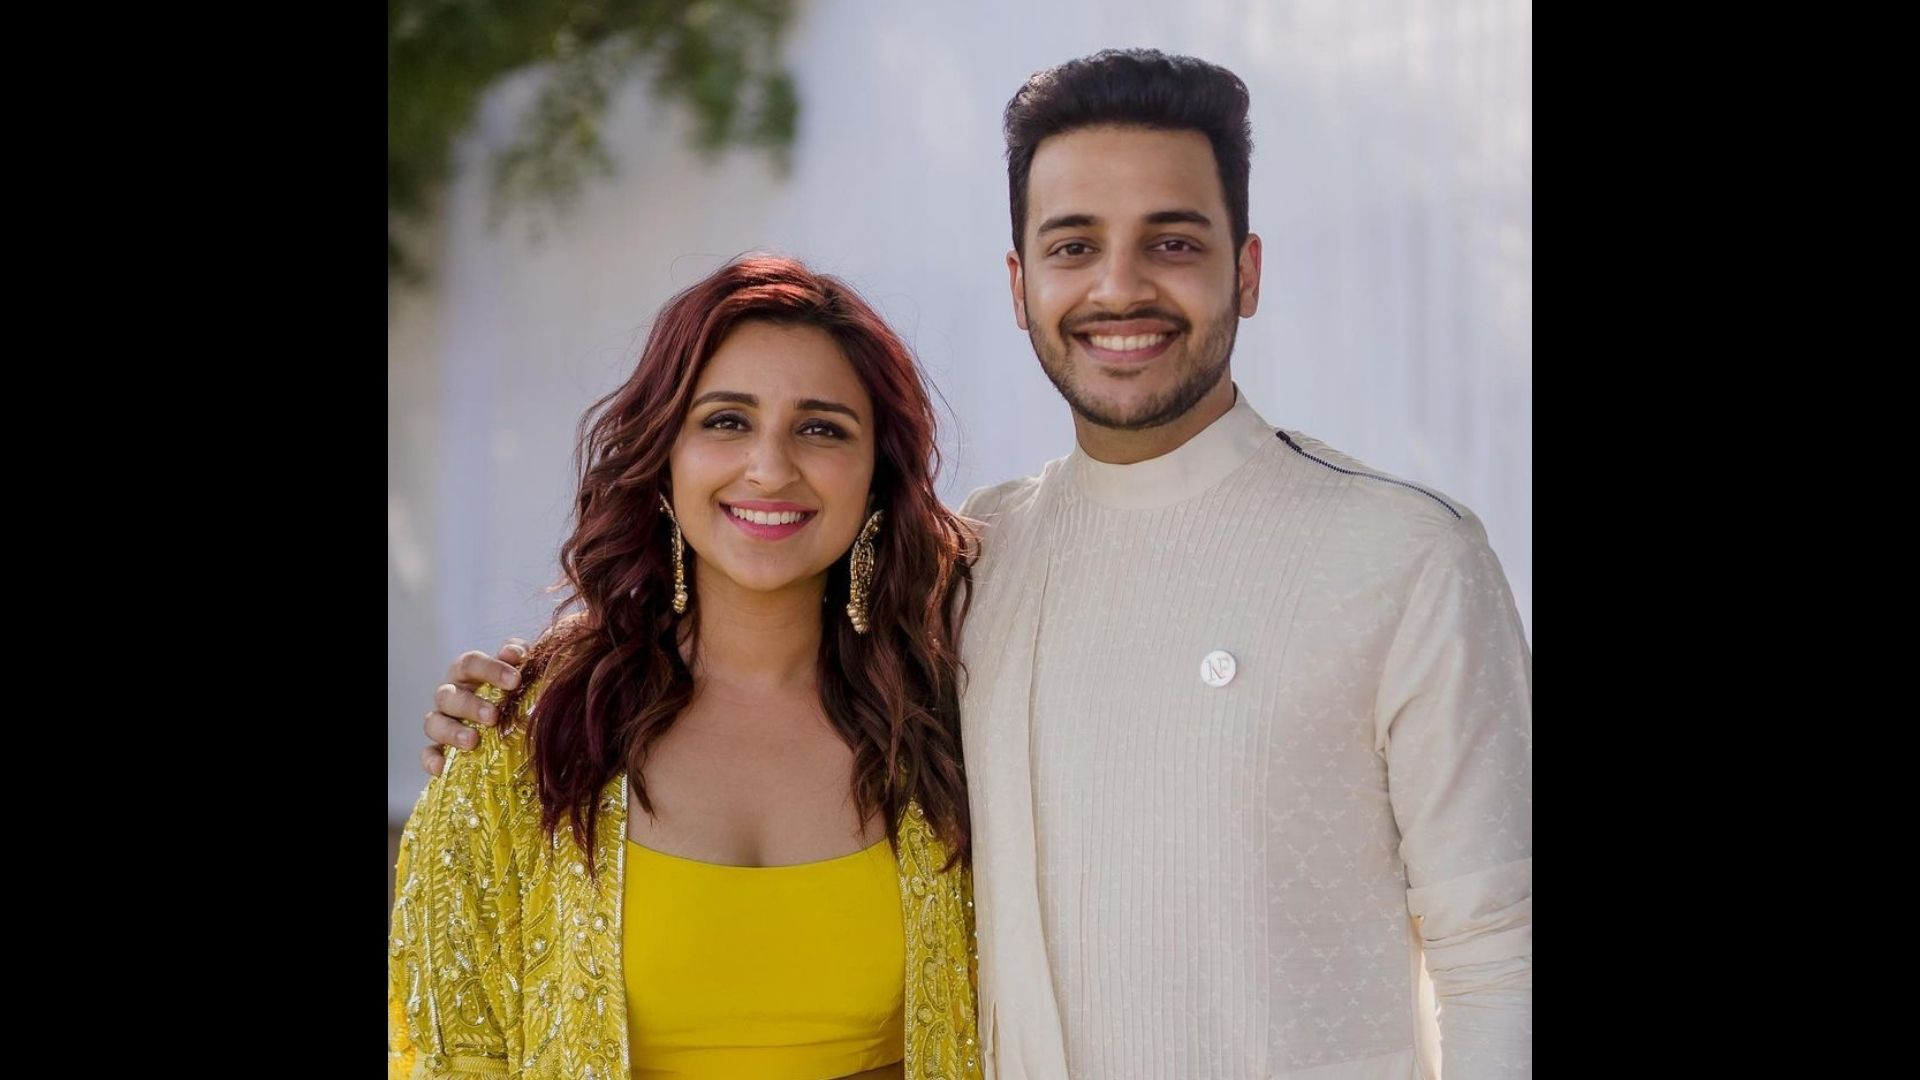 Parineeti Chopra Along With Brother Shivang Chopra Croon Kalank Title Track Leaving All Of Us Awestruck; You Cannot Miss Their Sync